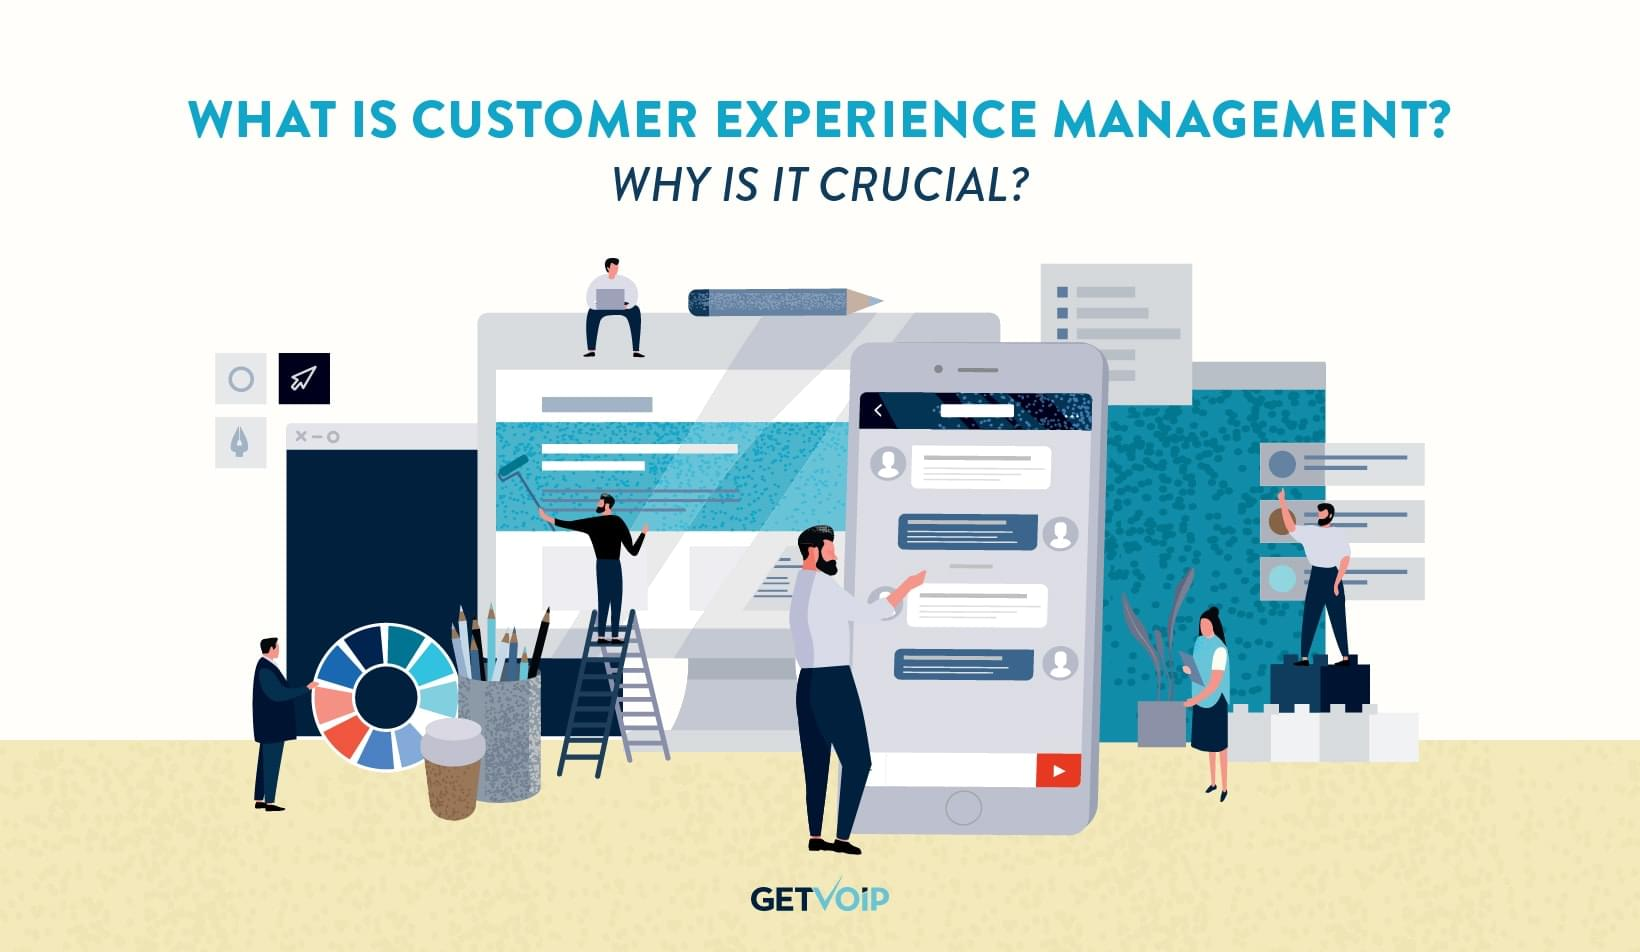 What is Customer Experience Management and Why is it Crucial?